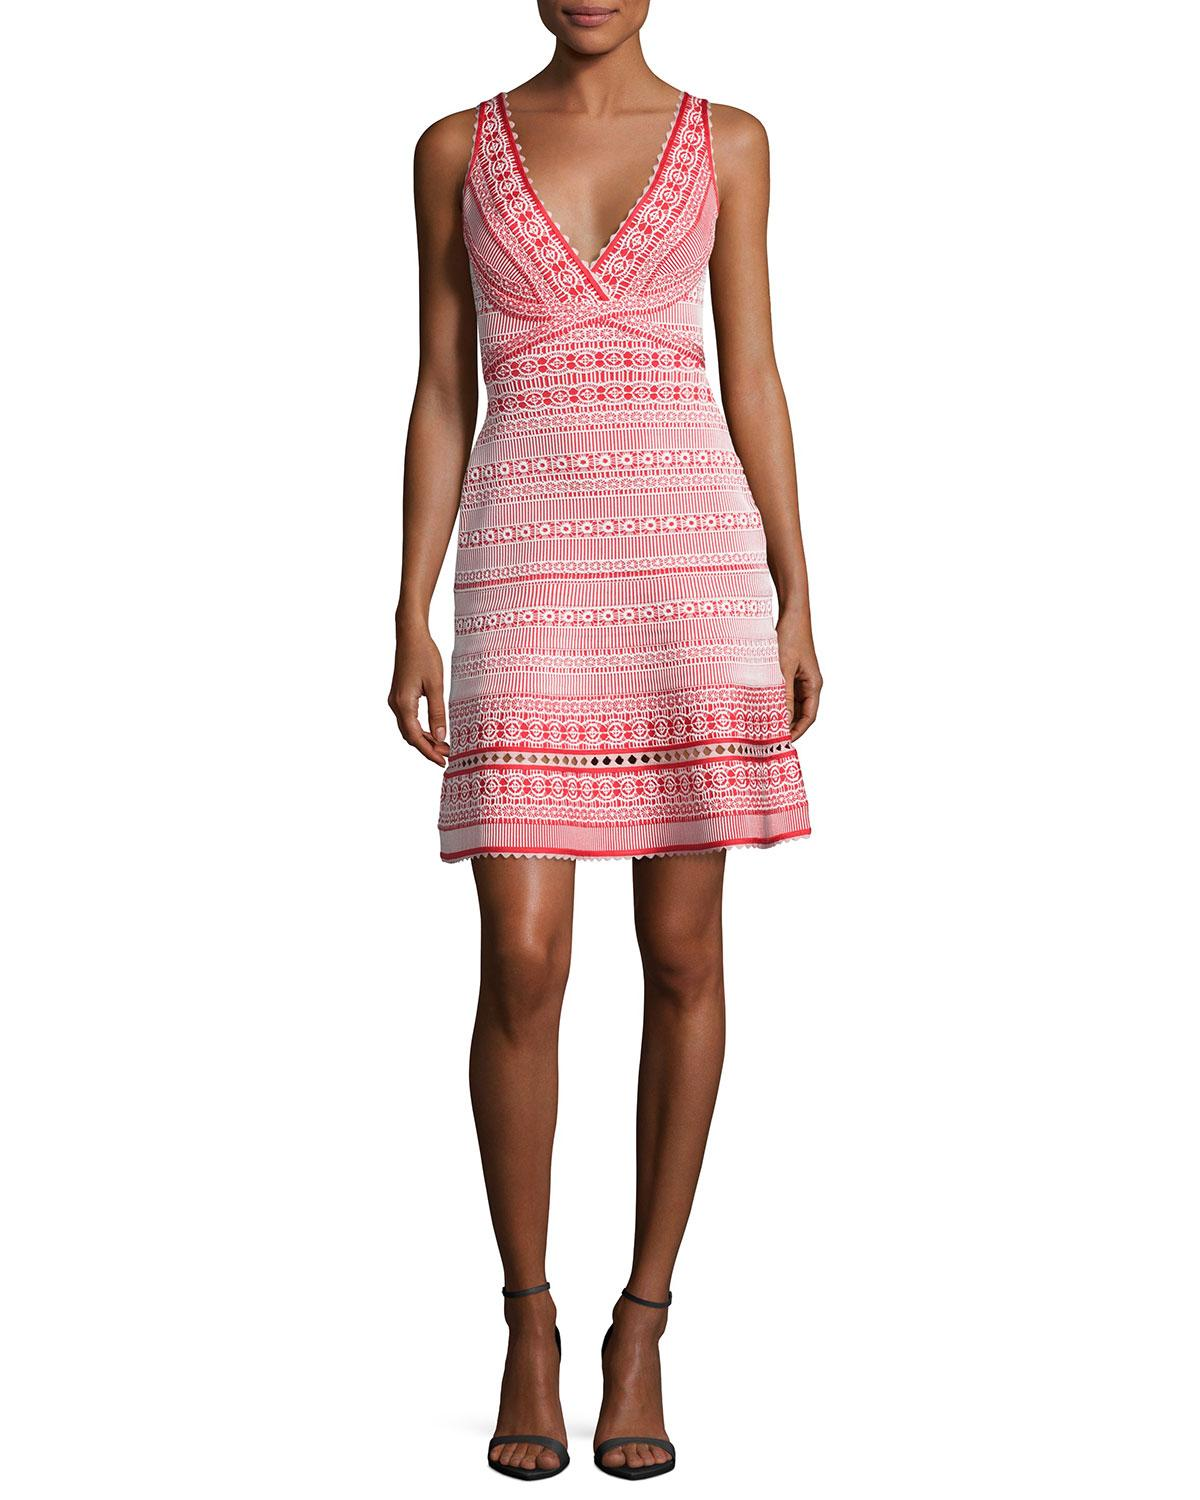 Herve Leger was launched by a French designerHerve Leger in , and made his name famous with body-conscious clothes favored by socialites and celebrities. The famous bandage dress is still as in demand today as it was in the 80s.